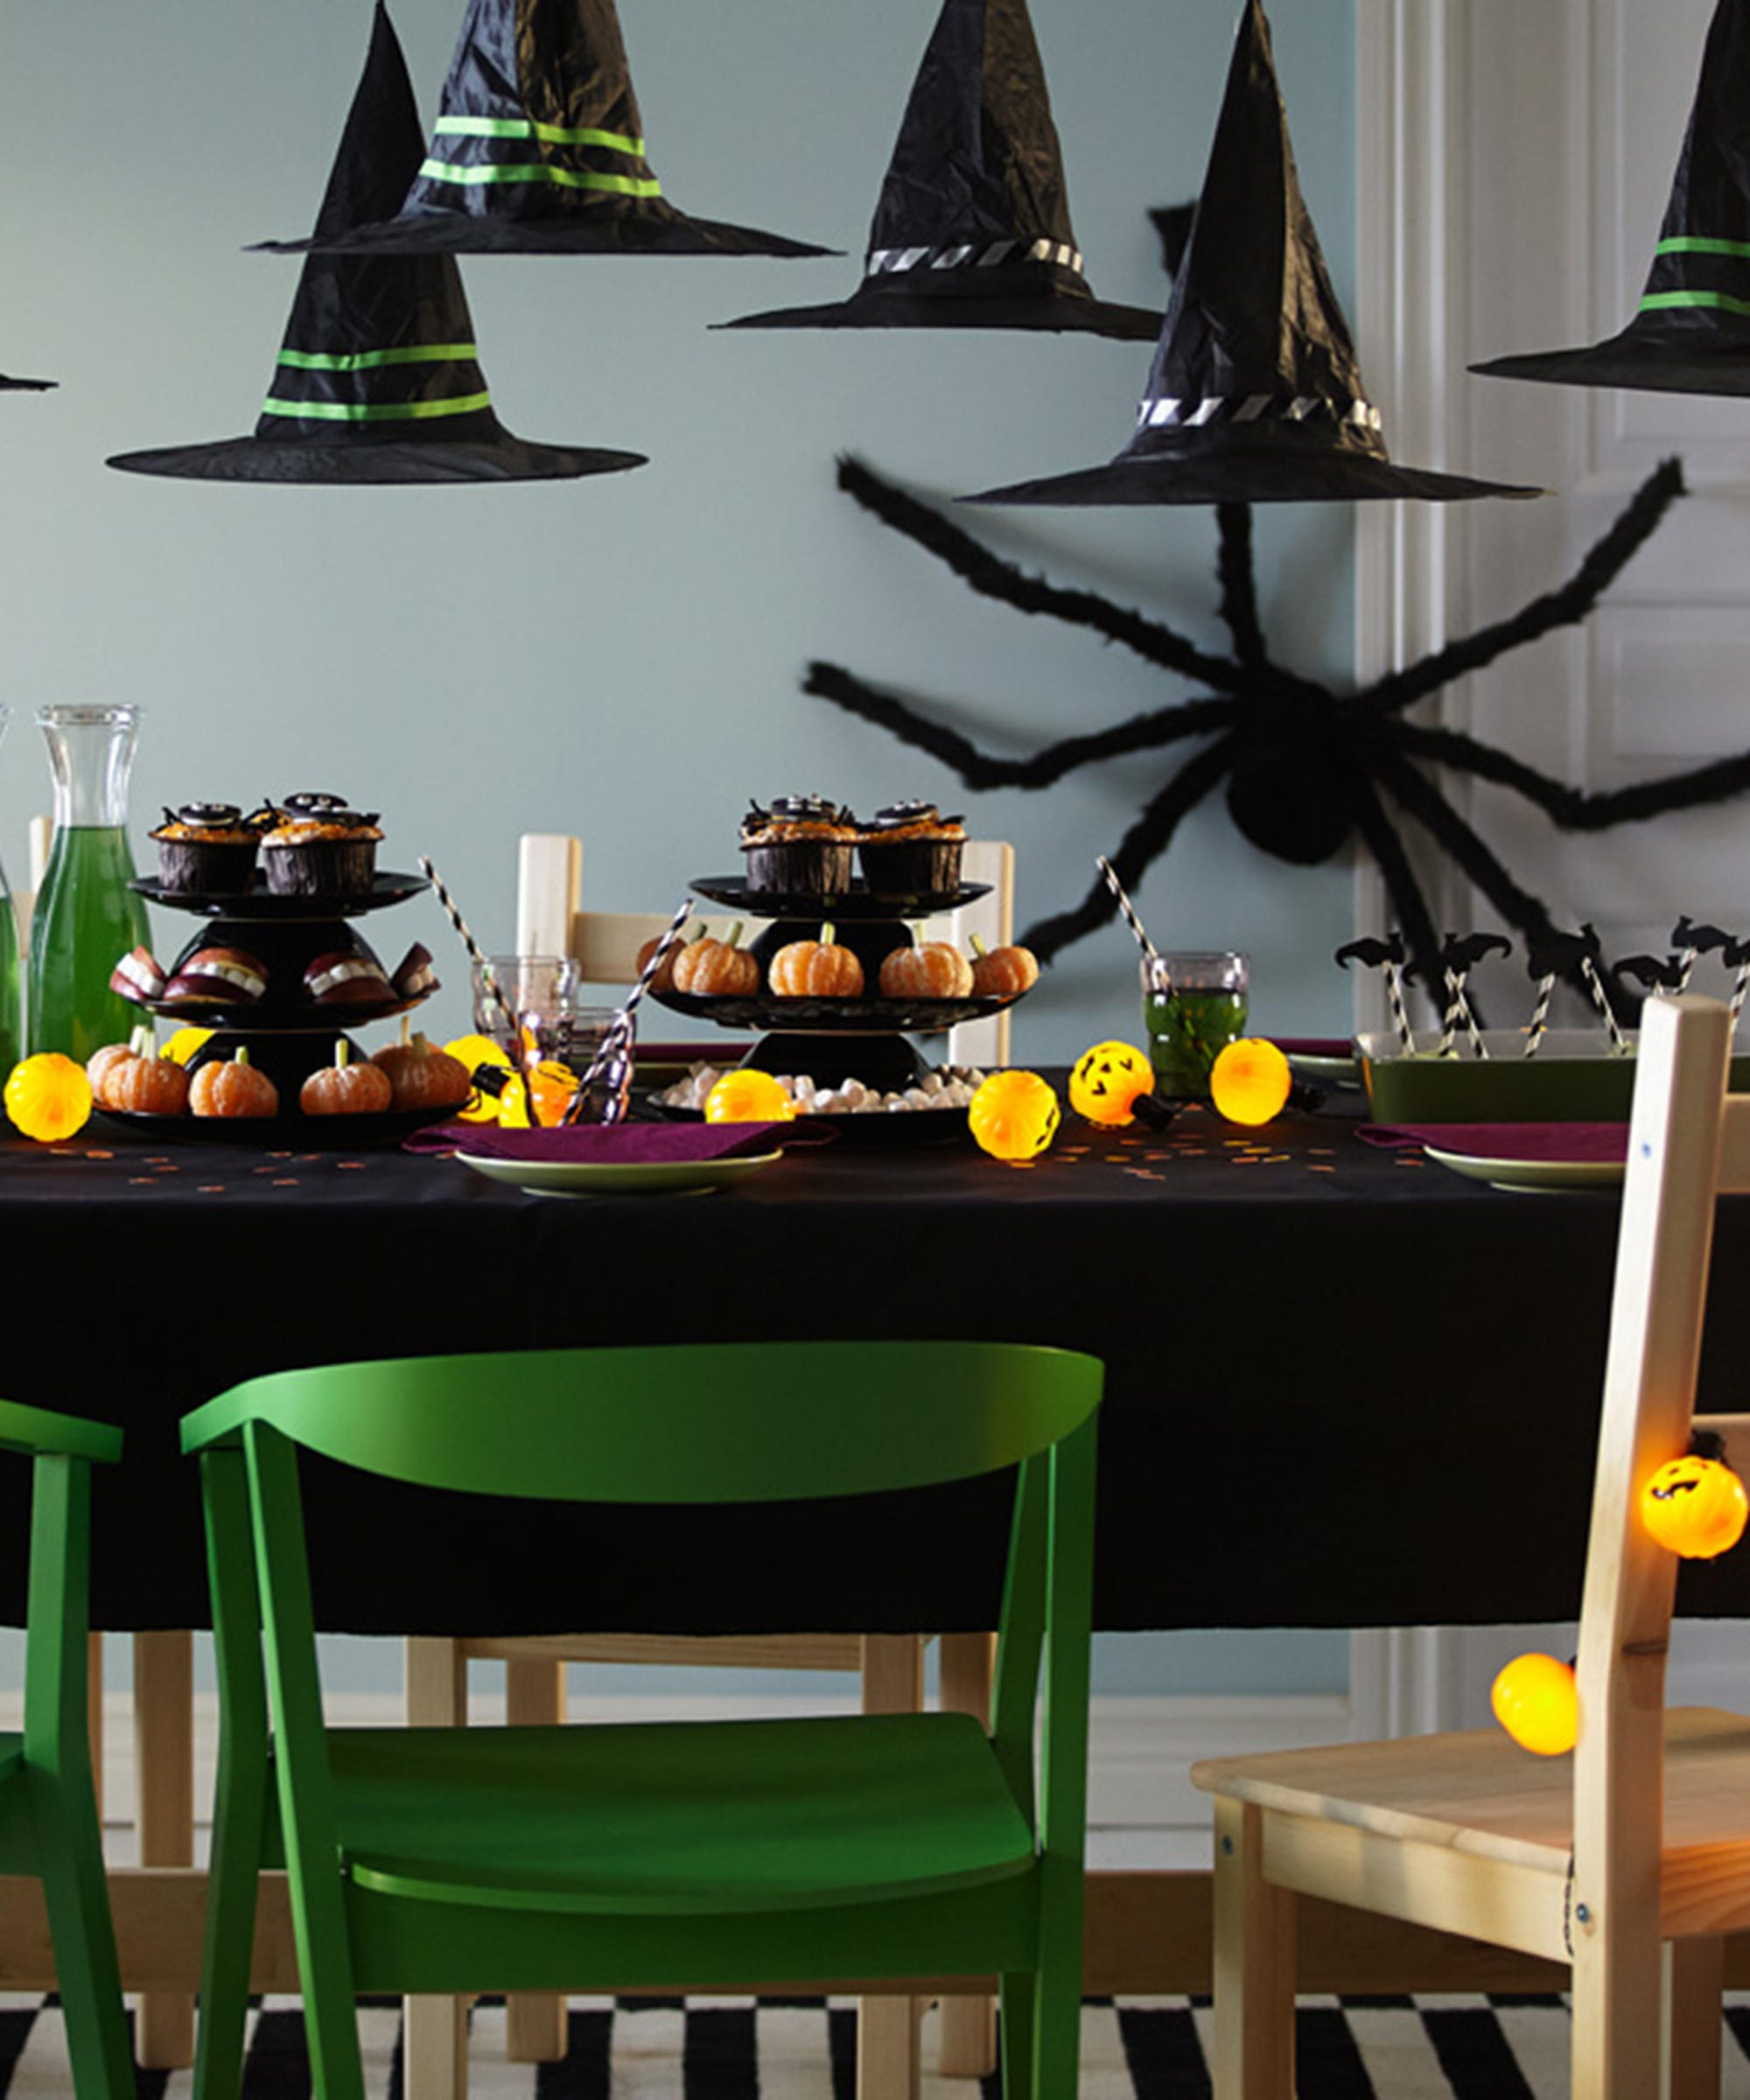 scary ideas party creepy decor decoration deca or decorations hall but just on easy for halloween and diy yard cheap